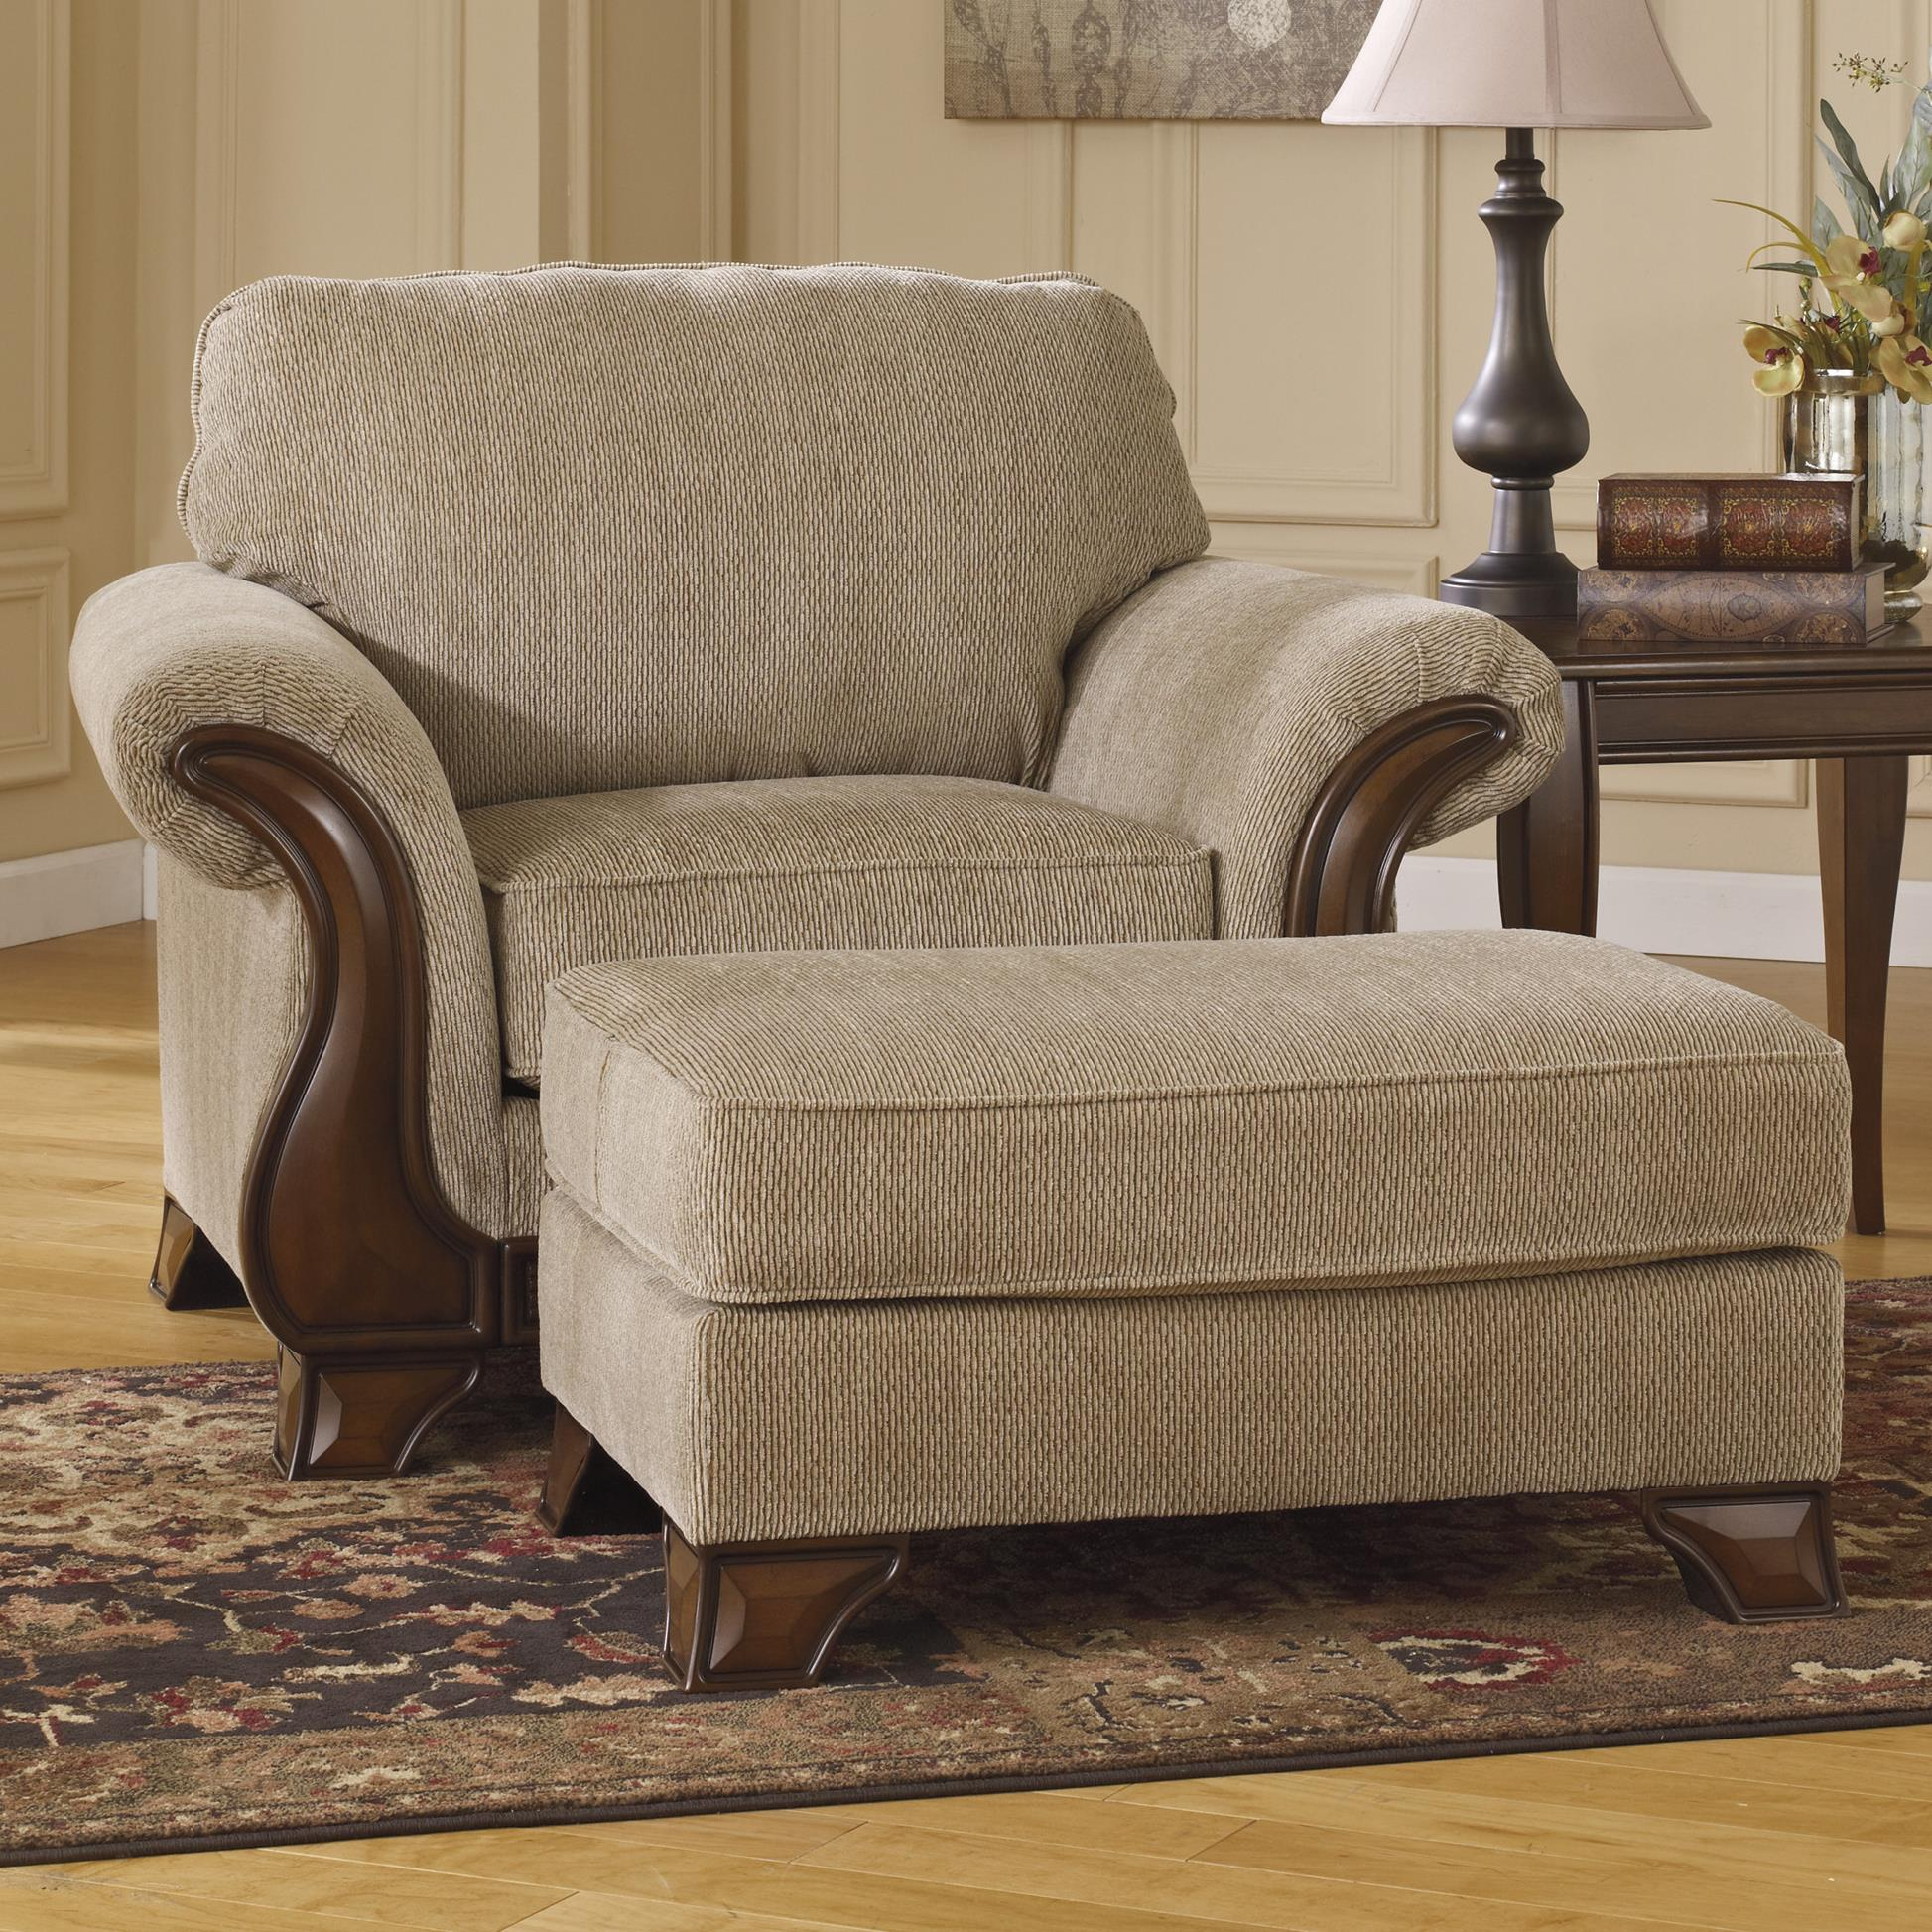 Ashley (Signature Design) Lanett Chair & Ottoman - Item Number: 4490020+14